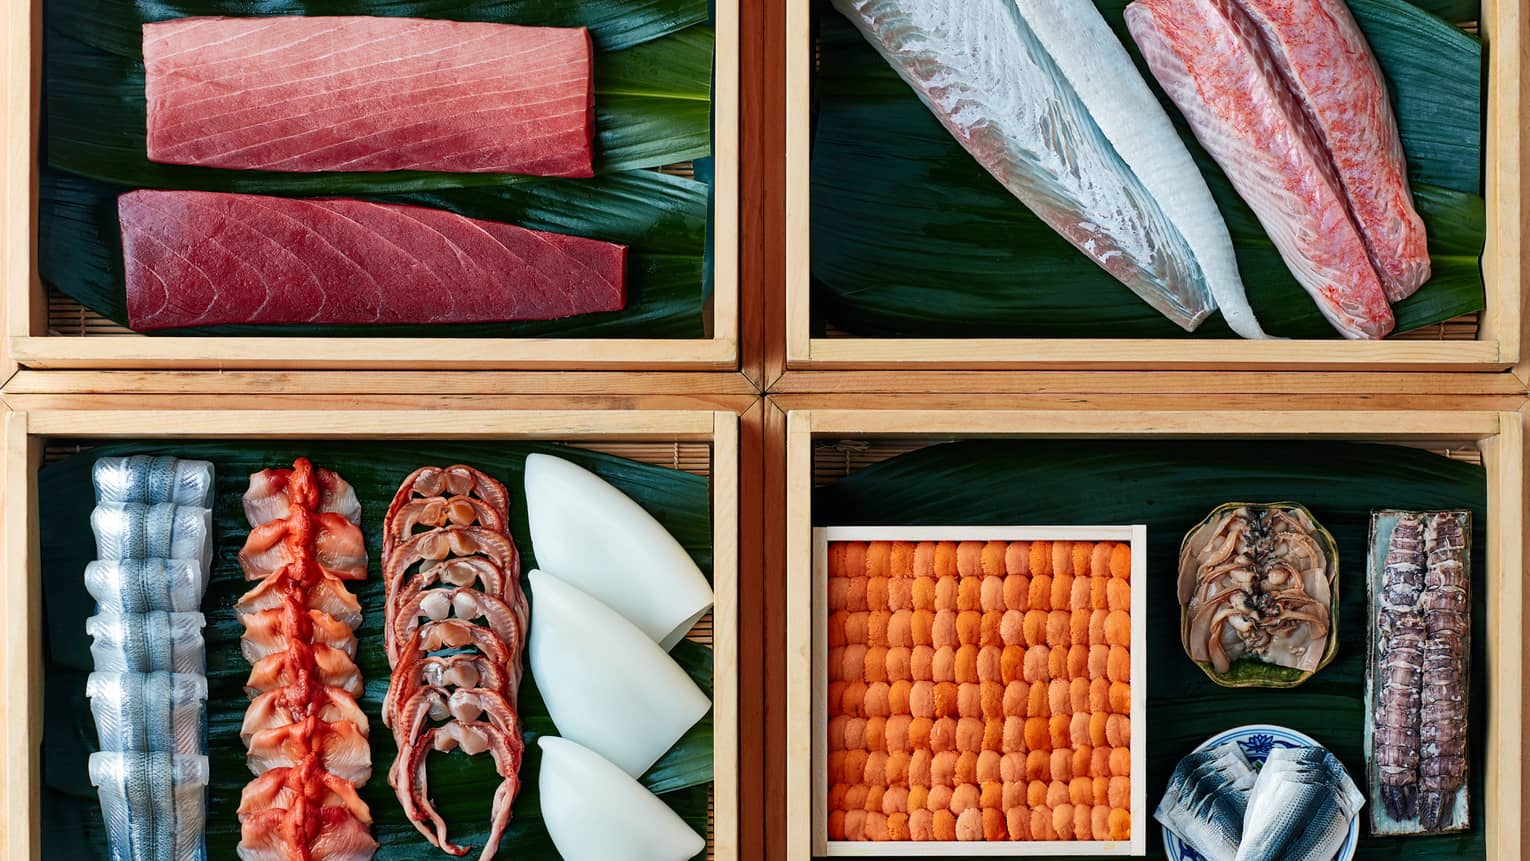 Four bamboo boxes with raw fish filets, sashimi sushi sliced fish